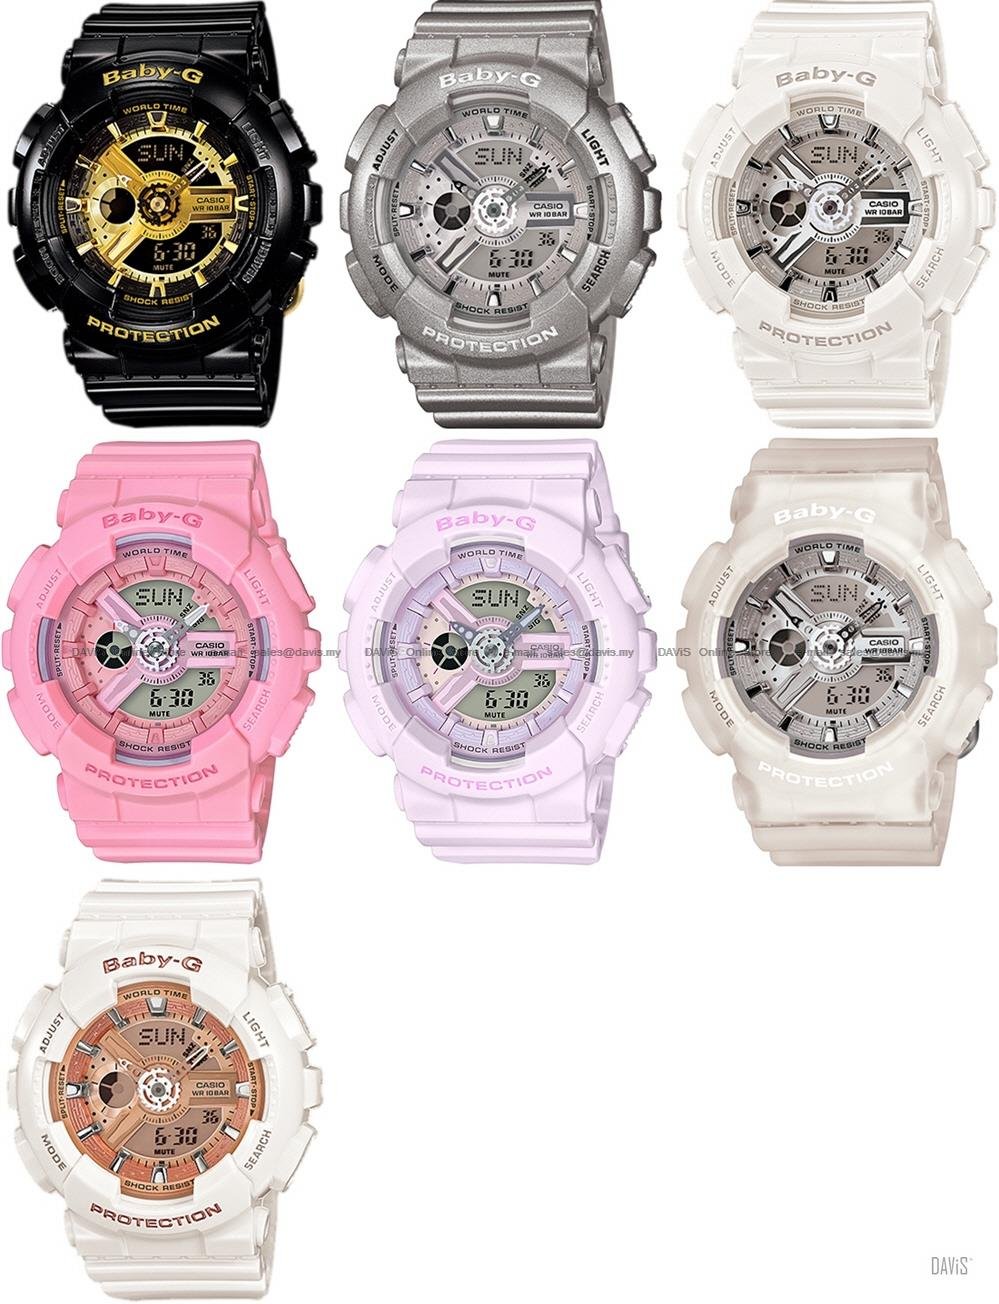 1495e47034426 CASIO BA-110 Baby-G ana-digi multid (end 11 14 2019 7 39 PM)